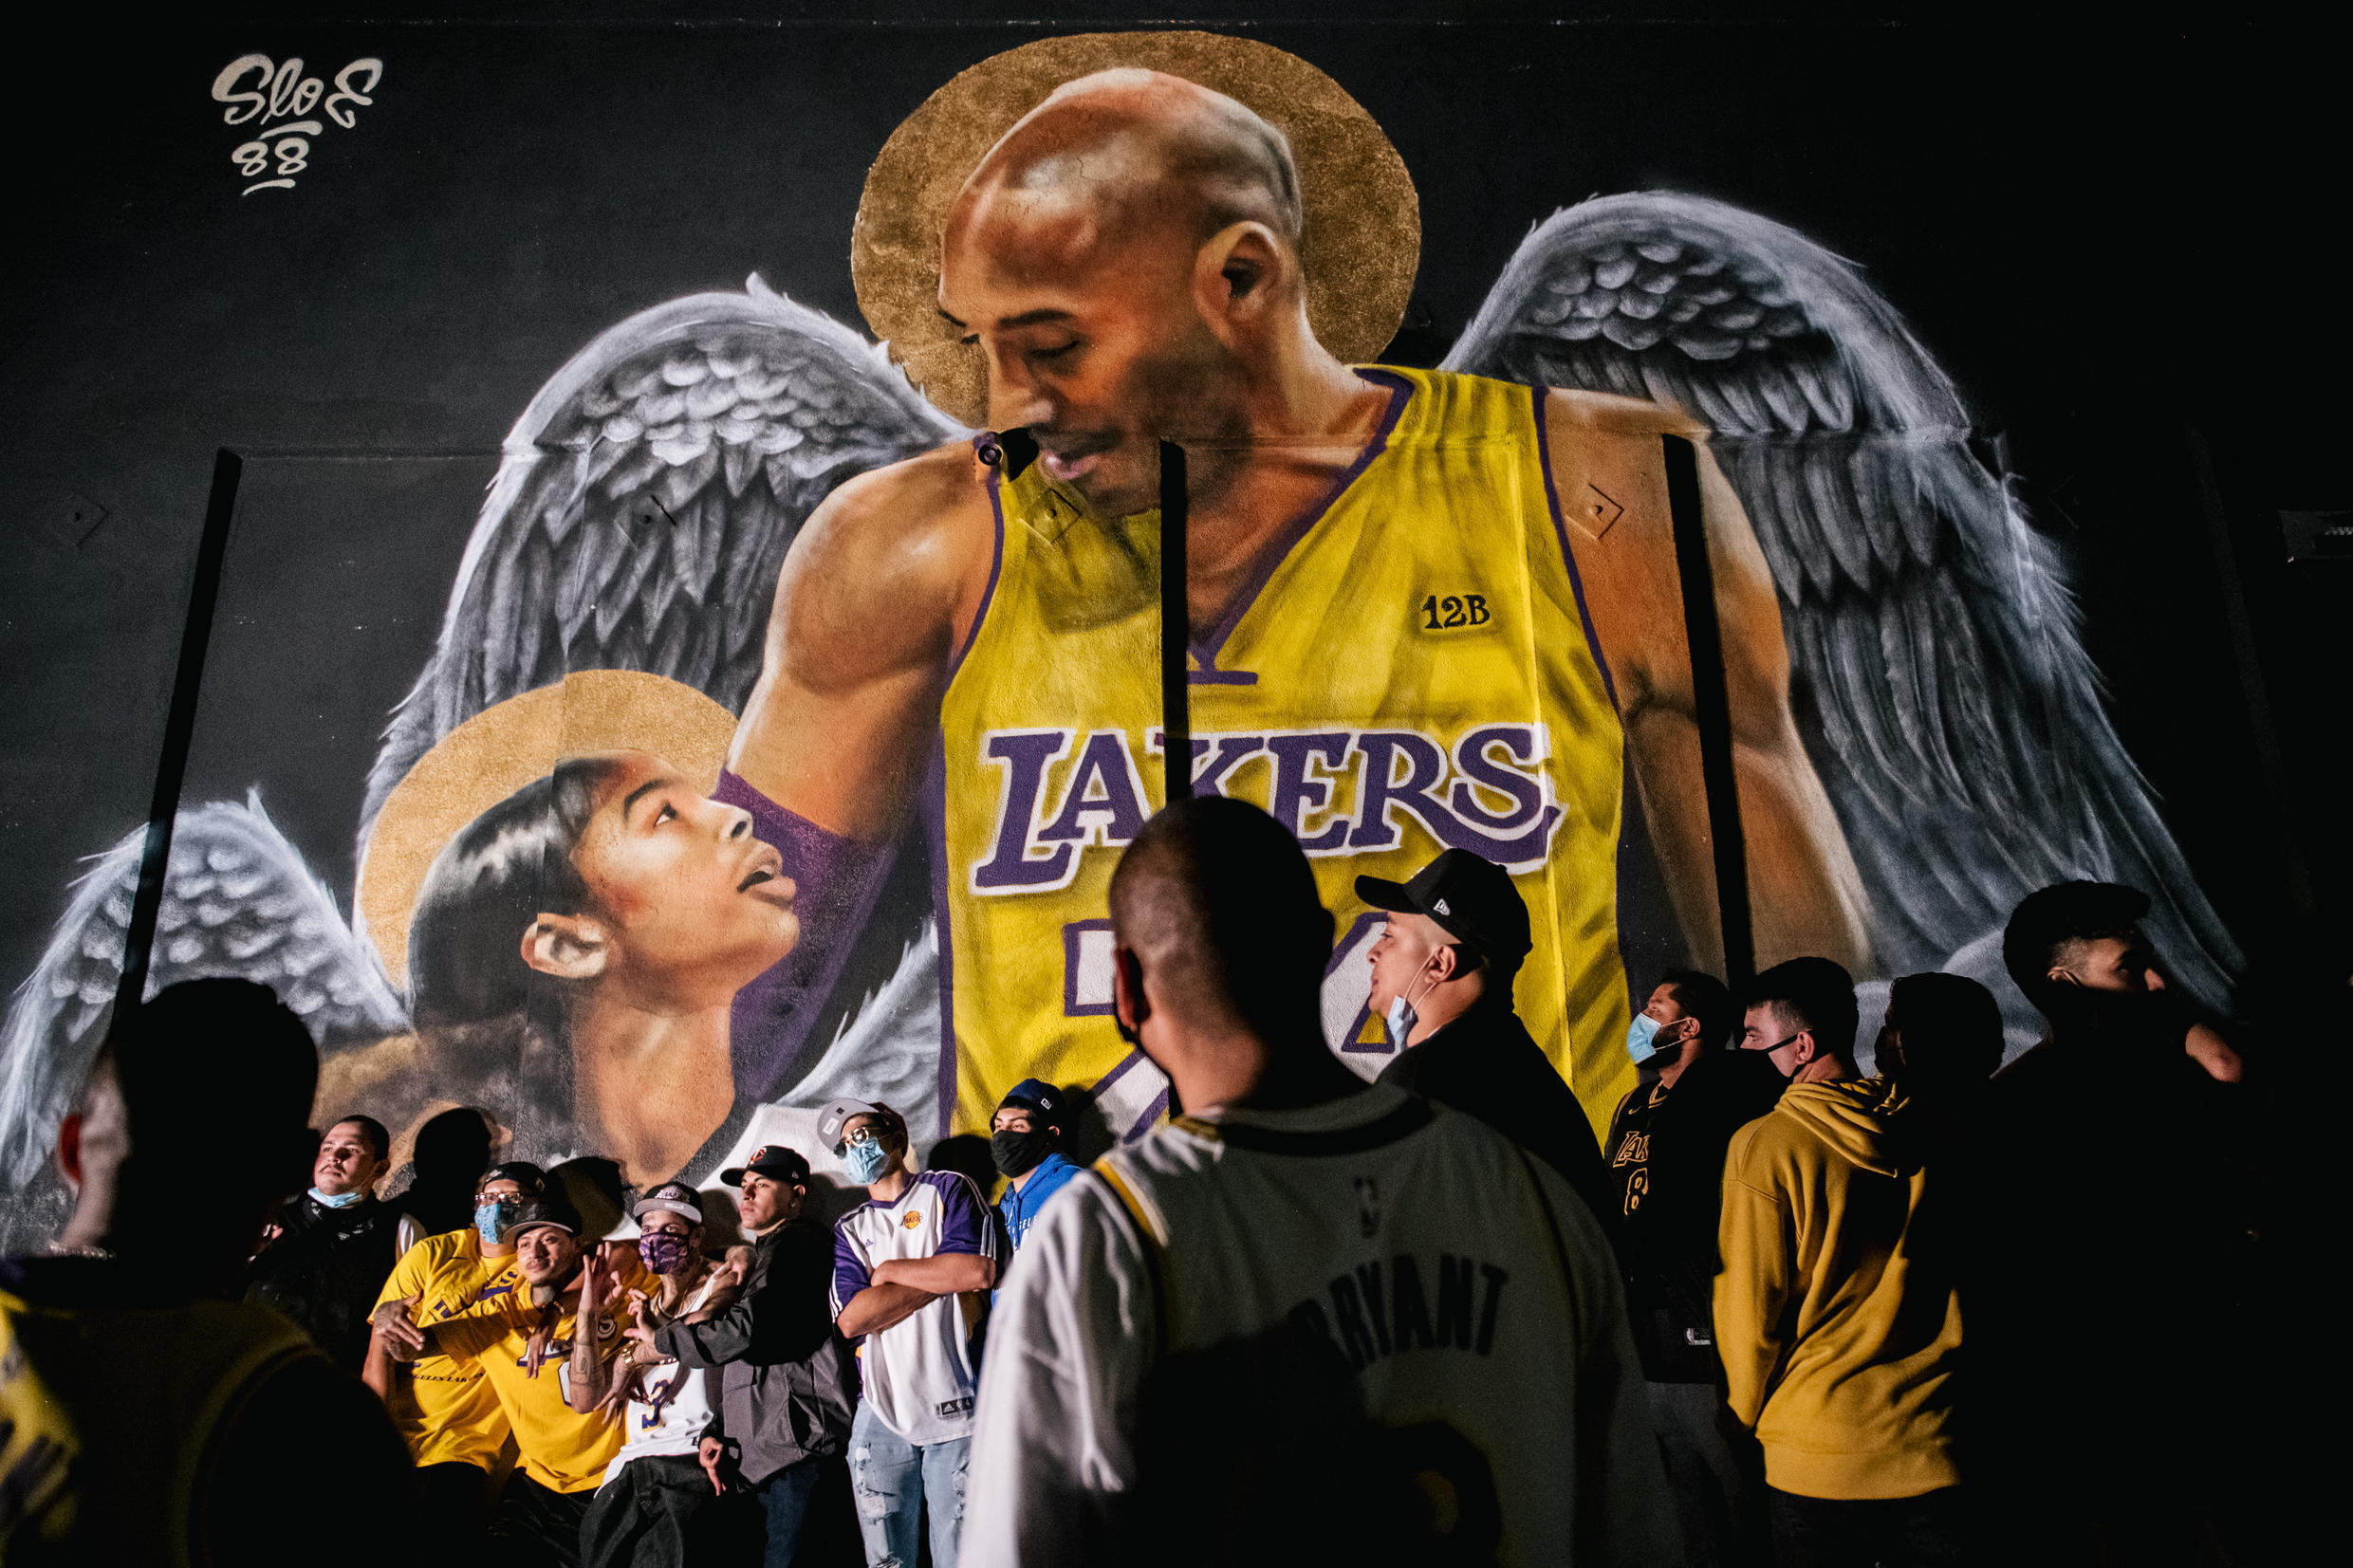 Lakers fans stand in front of a mural of Kobe Bryant and his daughter Gianna Bryant on October 11, 2020, in Los Angeles, California, after the team defeated the Miami Heat in Game 6 of the NBA Finals.